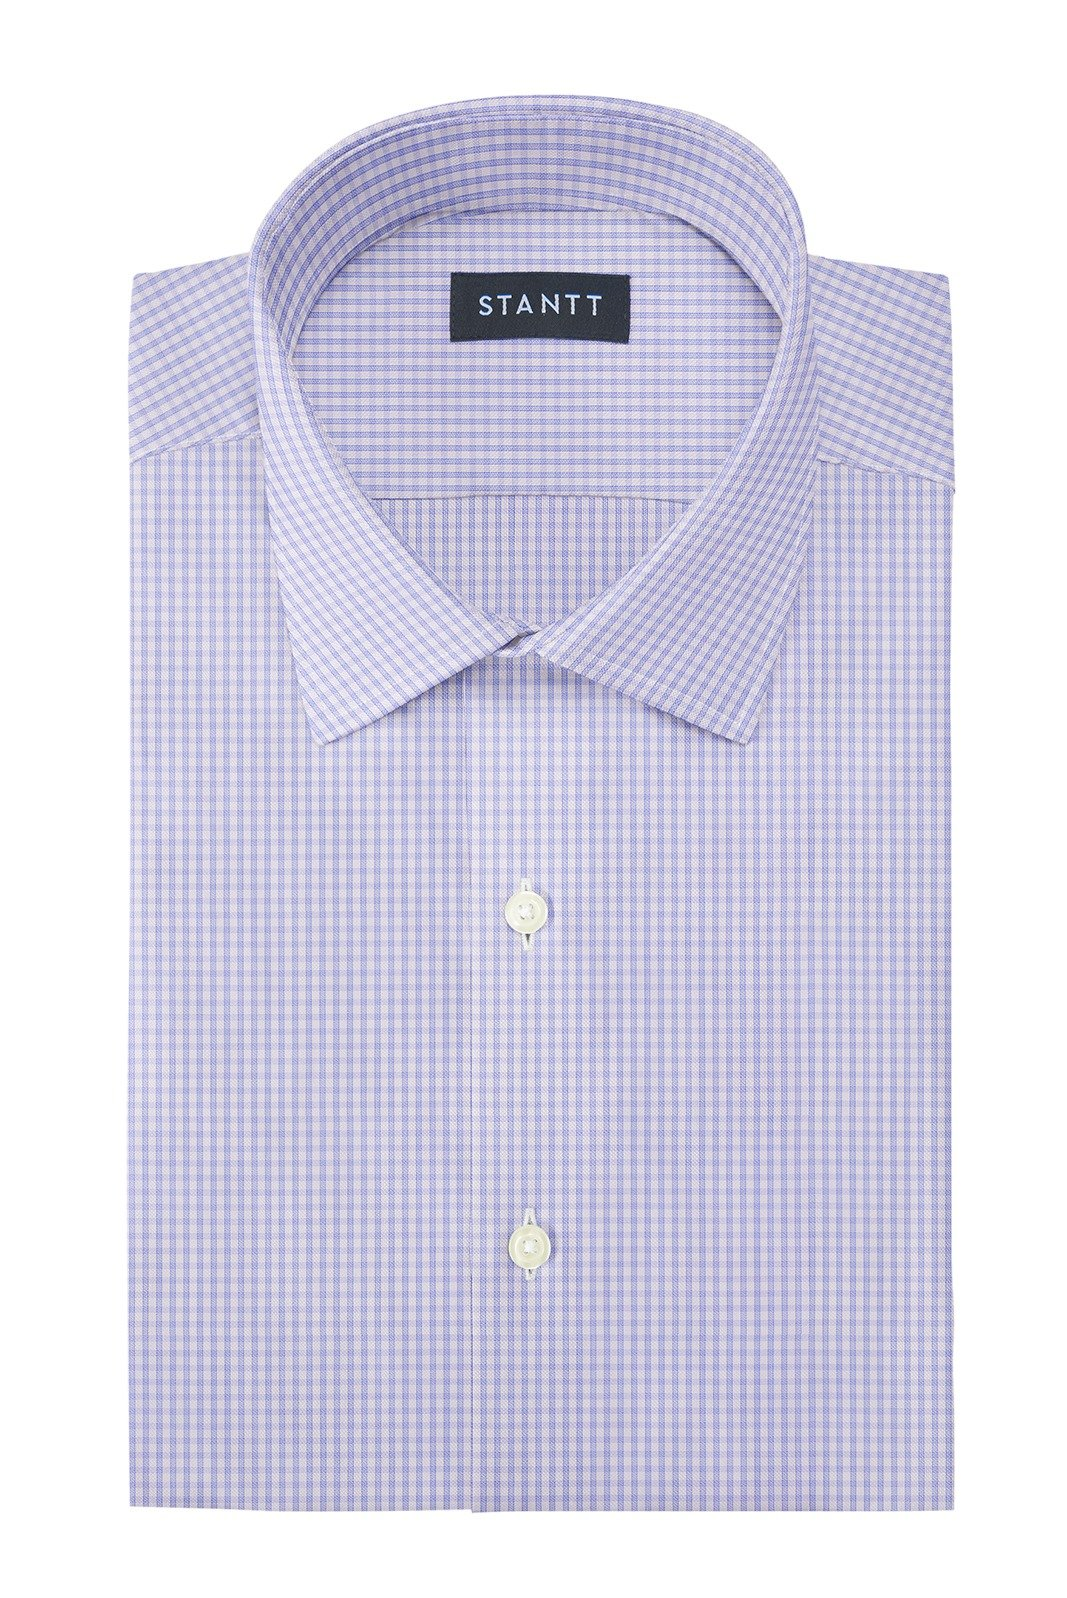 Wrinkle-Resistant Sky Blue Grid Check: Modified-Spread Collar, Barrel Cuff